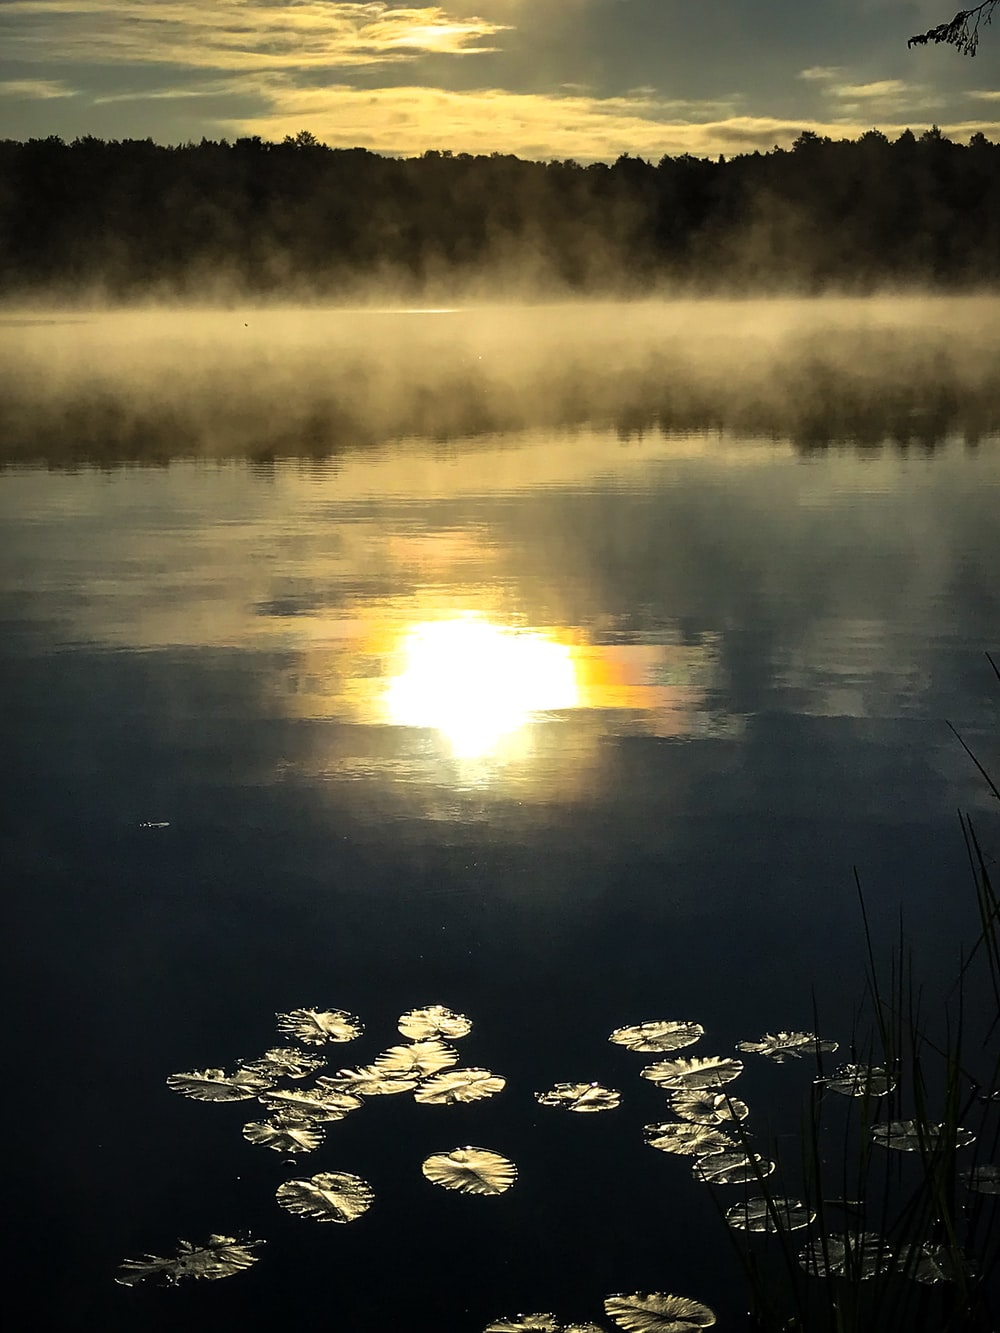 body of water with reflections of sun